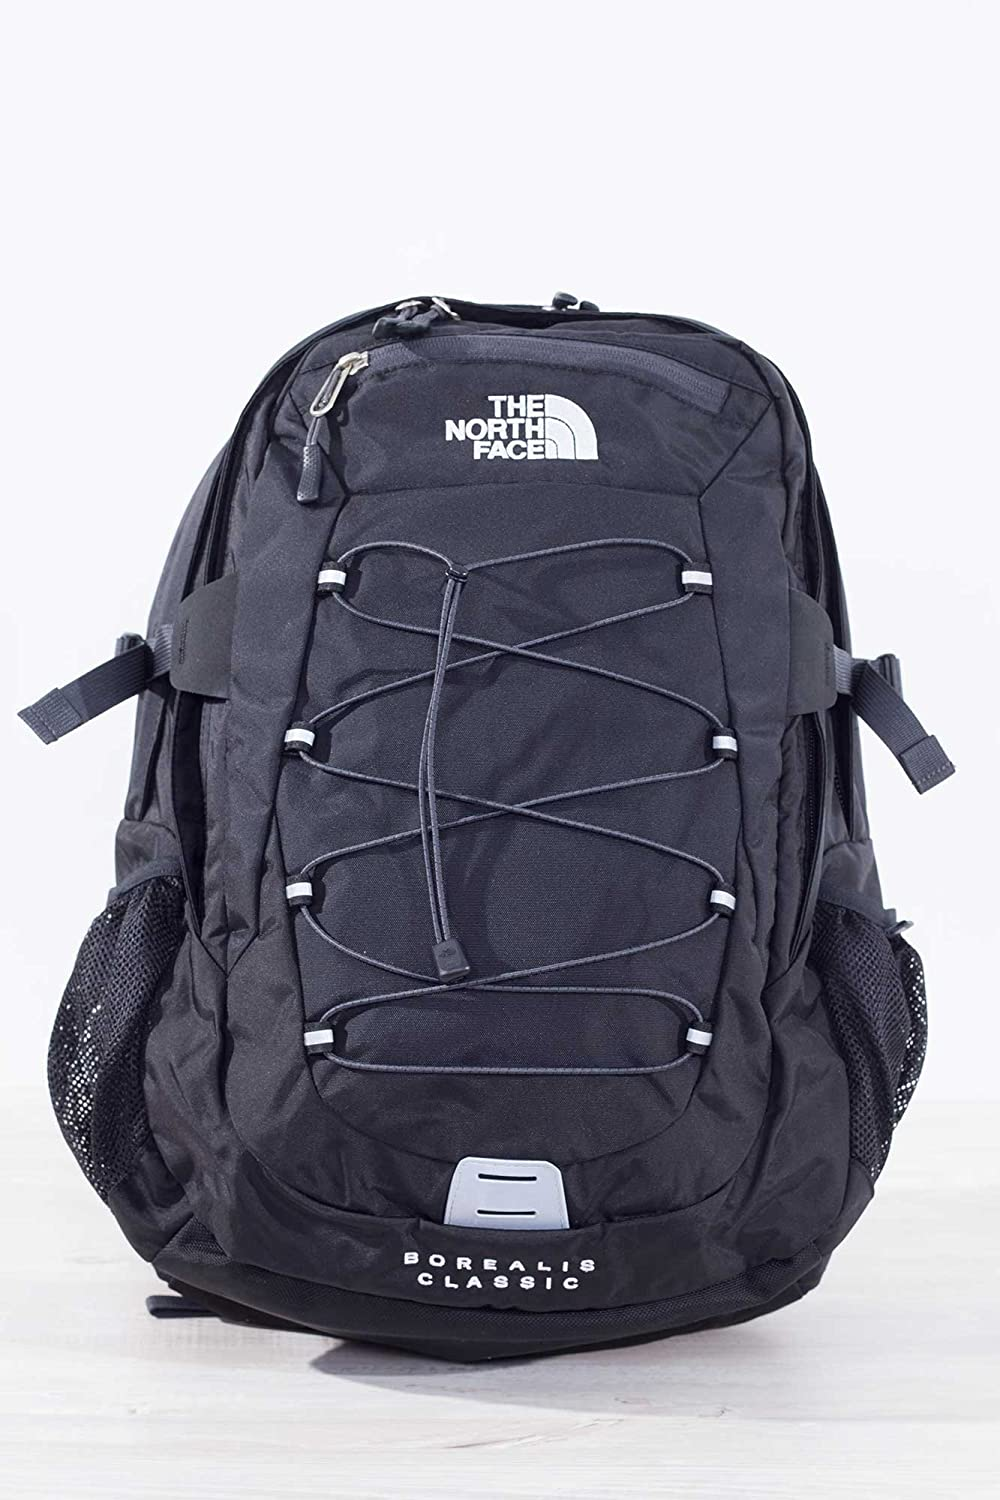 THE NORTH FACE Borealis Classic Sac à dos, Blanc/Rouge, Taille Unique